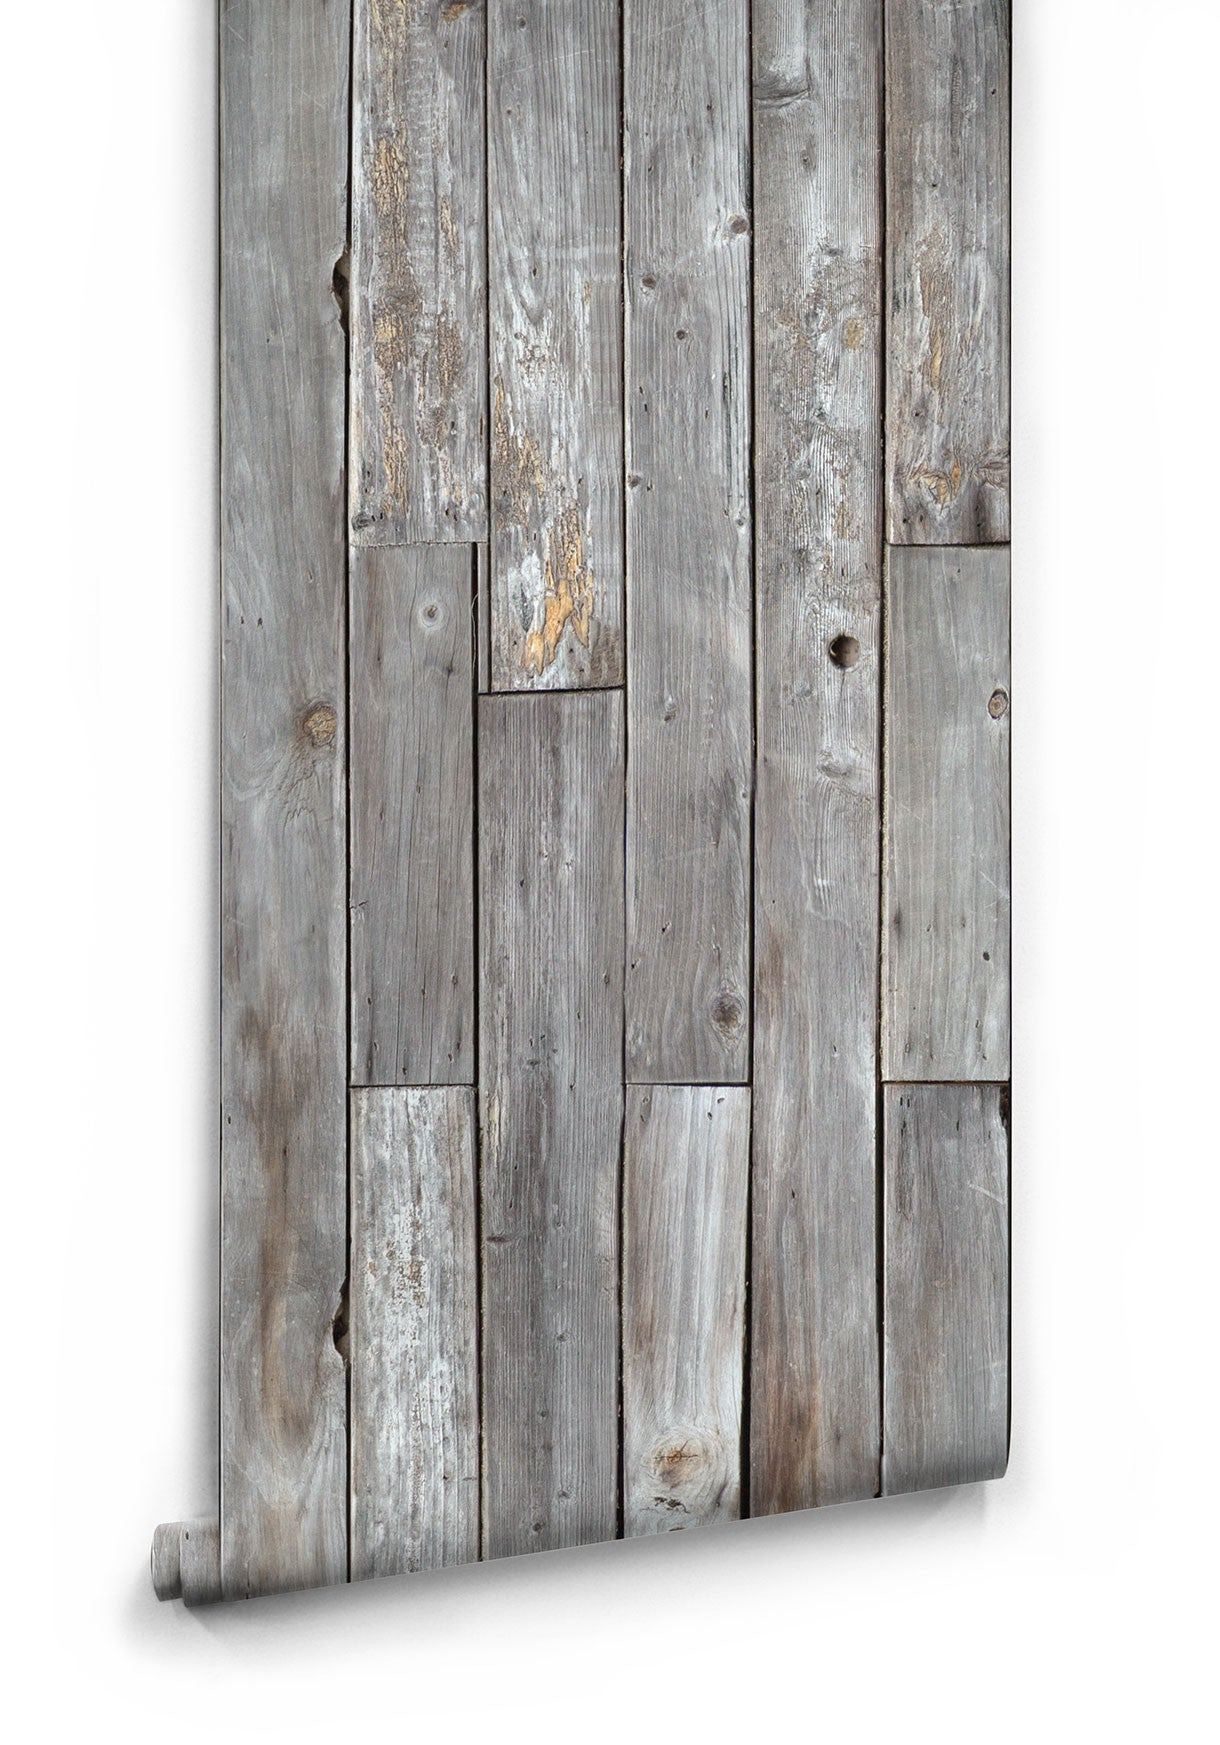 Sample Rustic Wood Panels Wallpaper Design By Milton King Burke